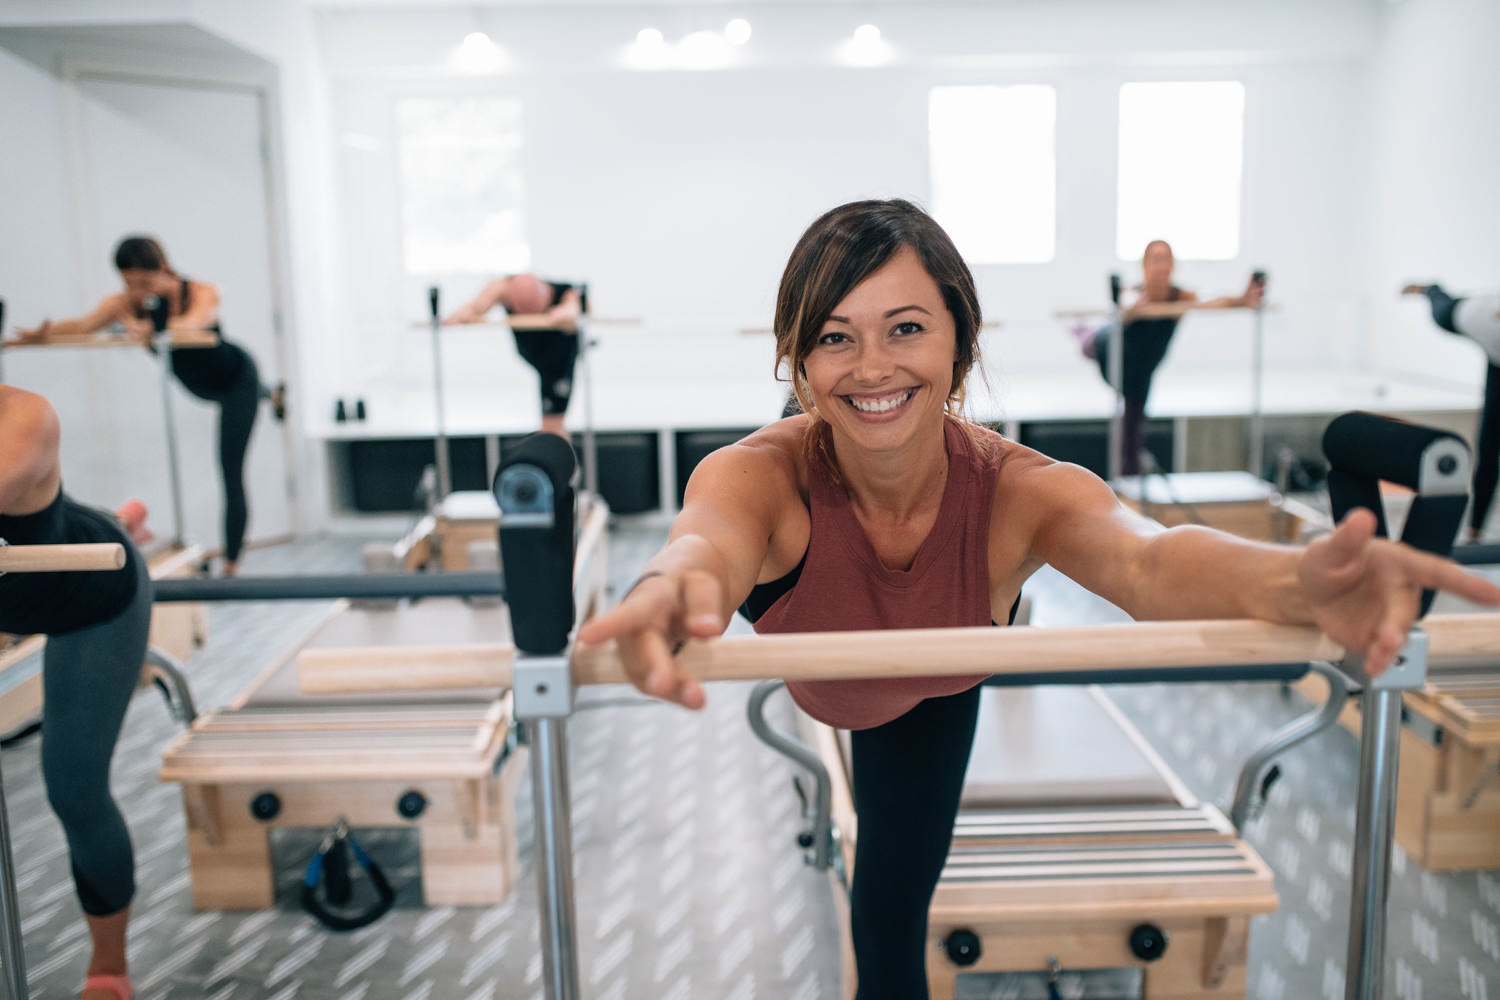 We are a Pilates studio unlike any other. - Our passionate team, custom-designed machines, and 5 kick-ass class styles offer a workout experience that will empower and uplift you, body and heart.